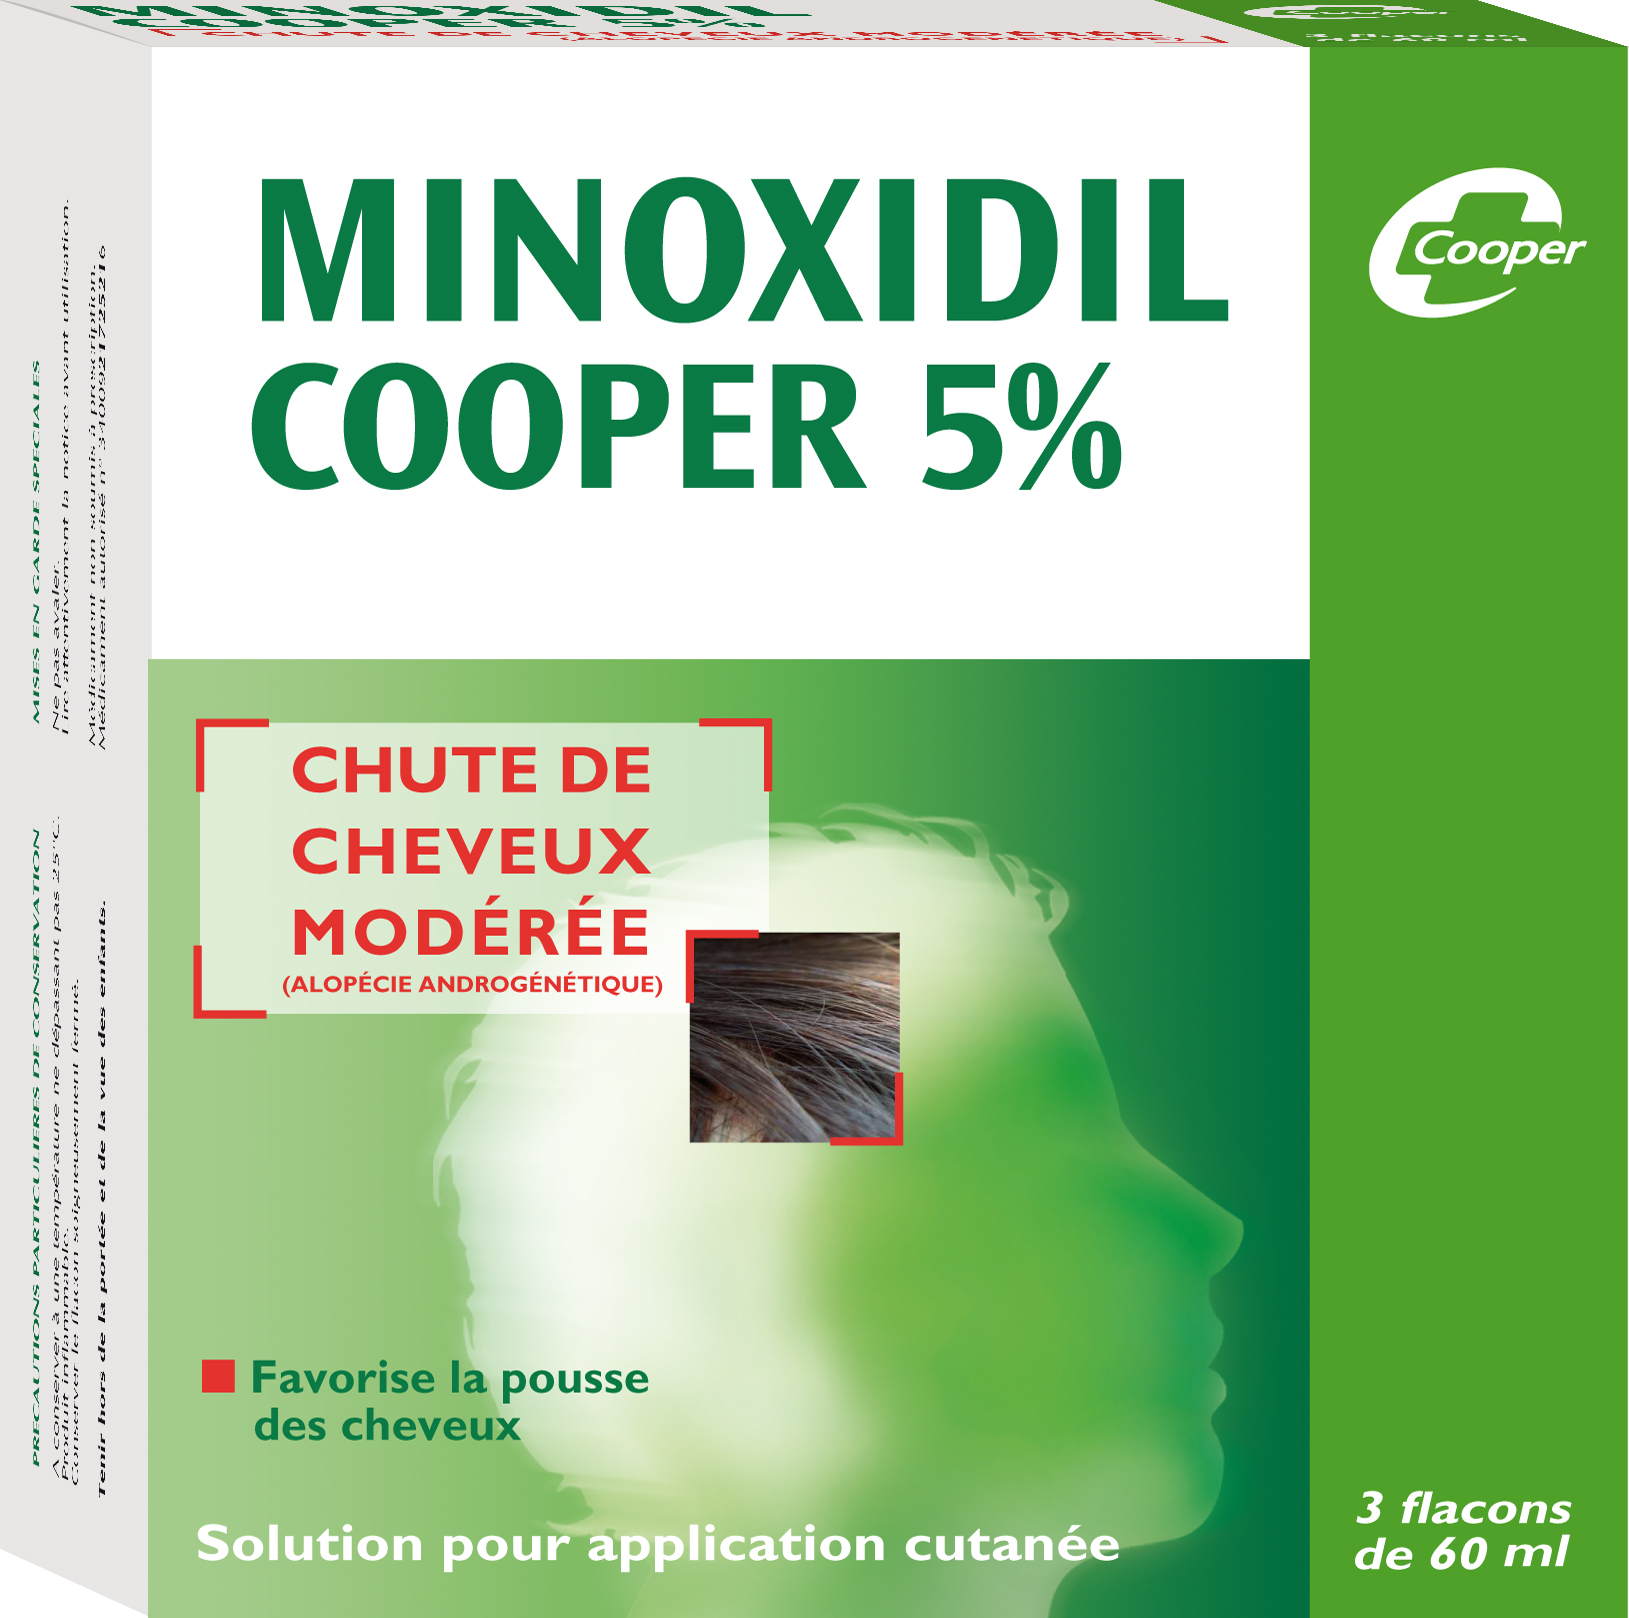 prix de minoxidil cooper 5 3 fl 60ml. Black Bedroom Furniture Sets. Home Design Ideas